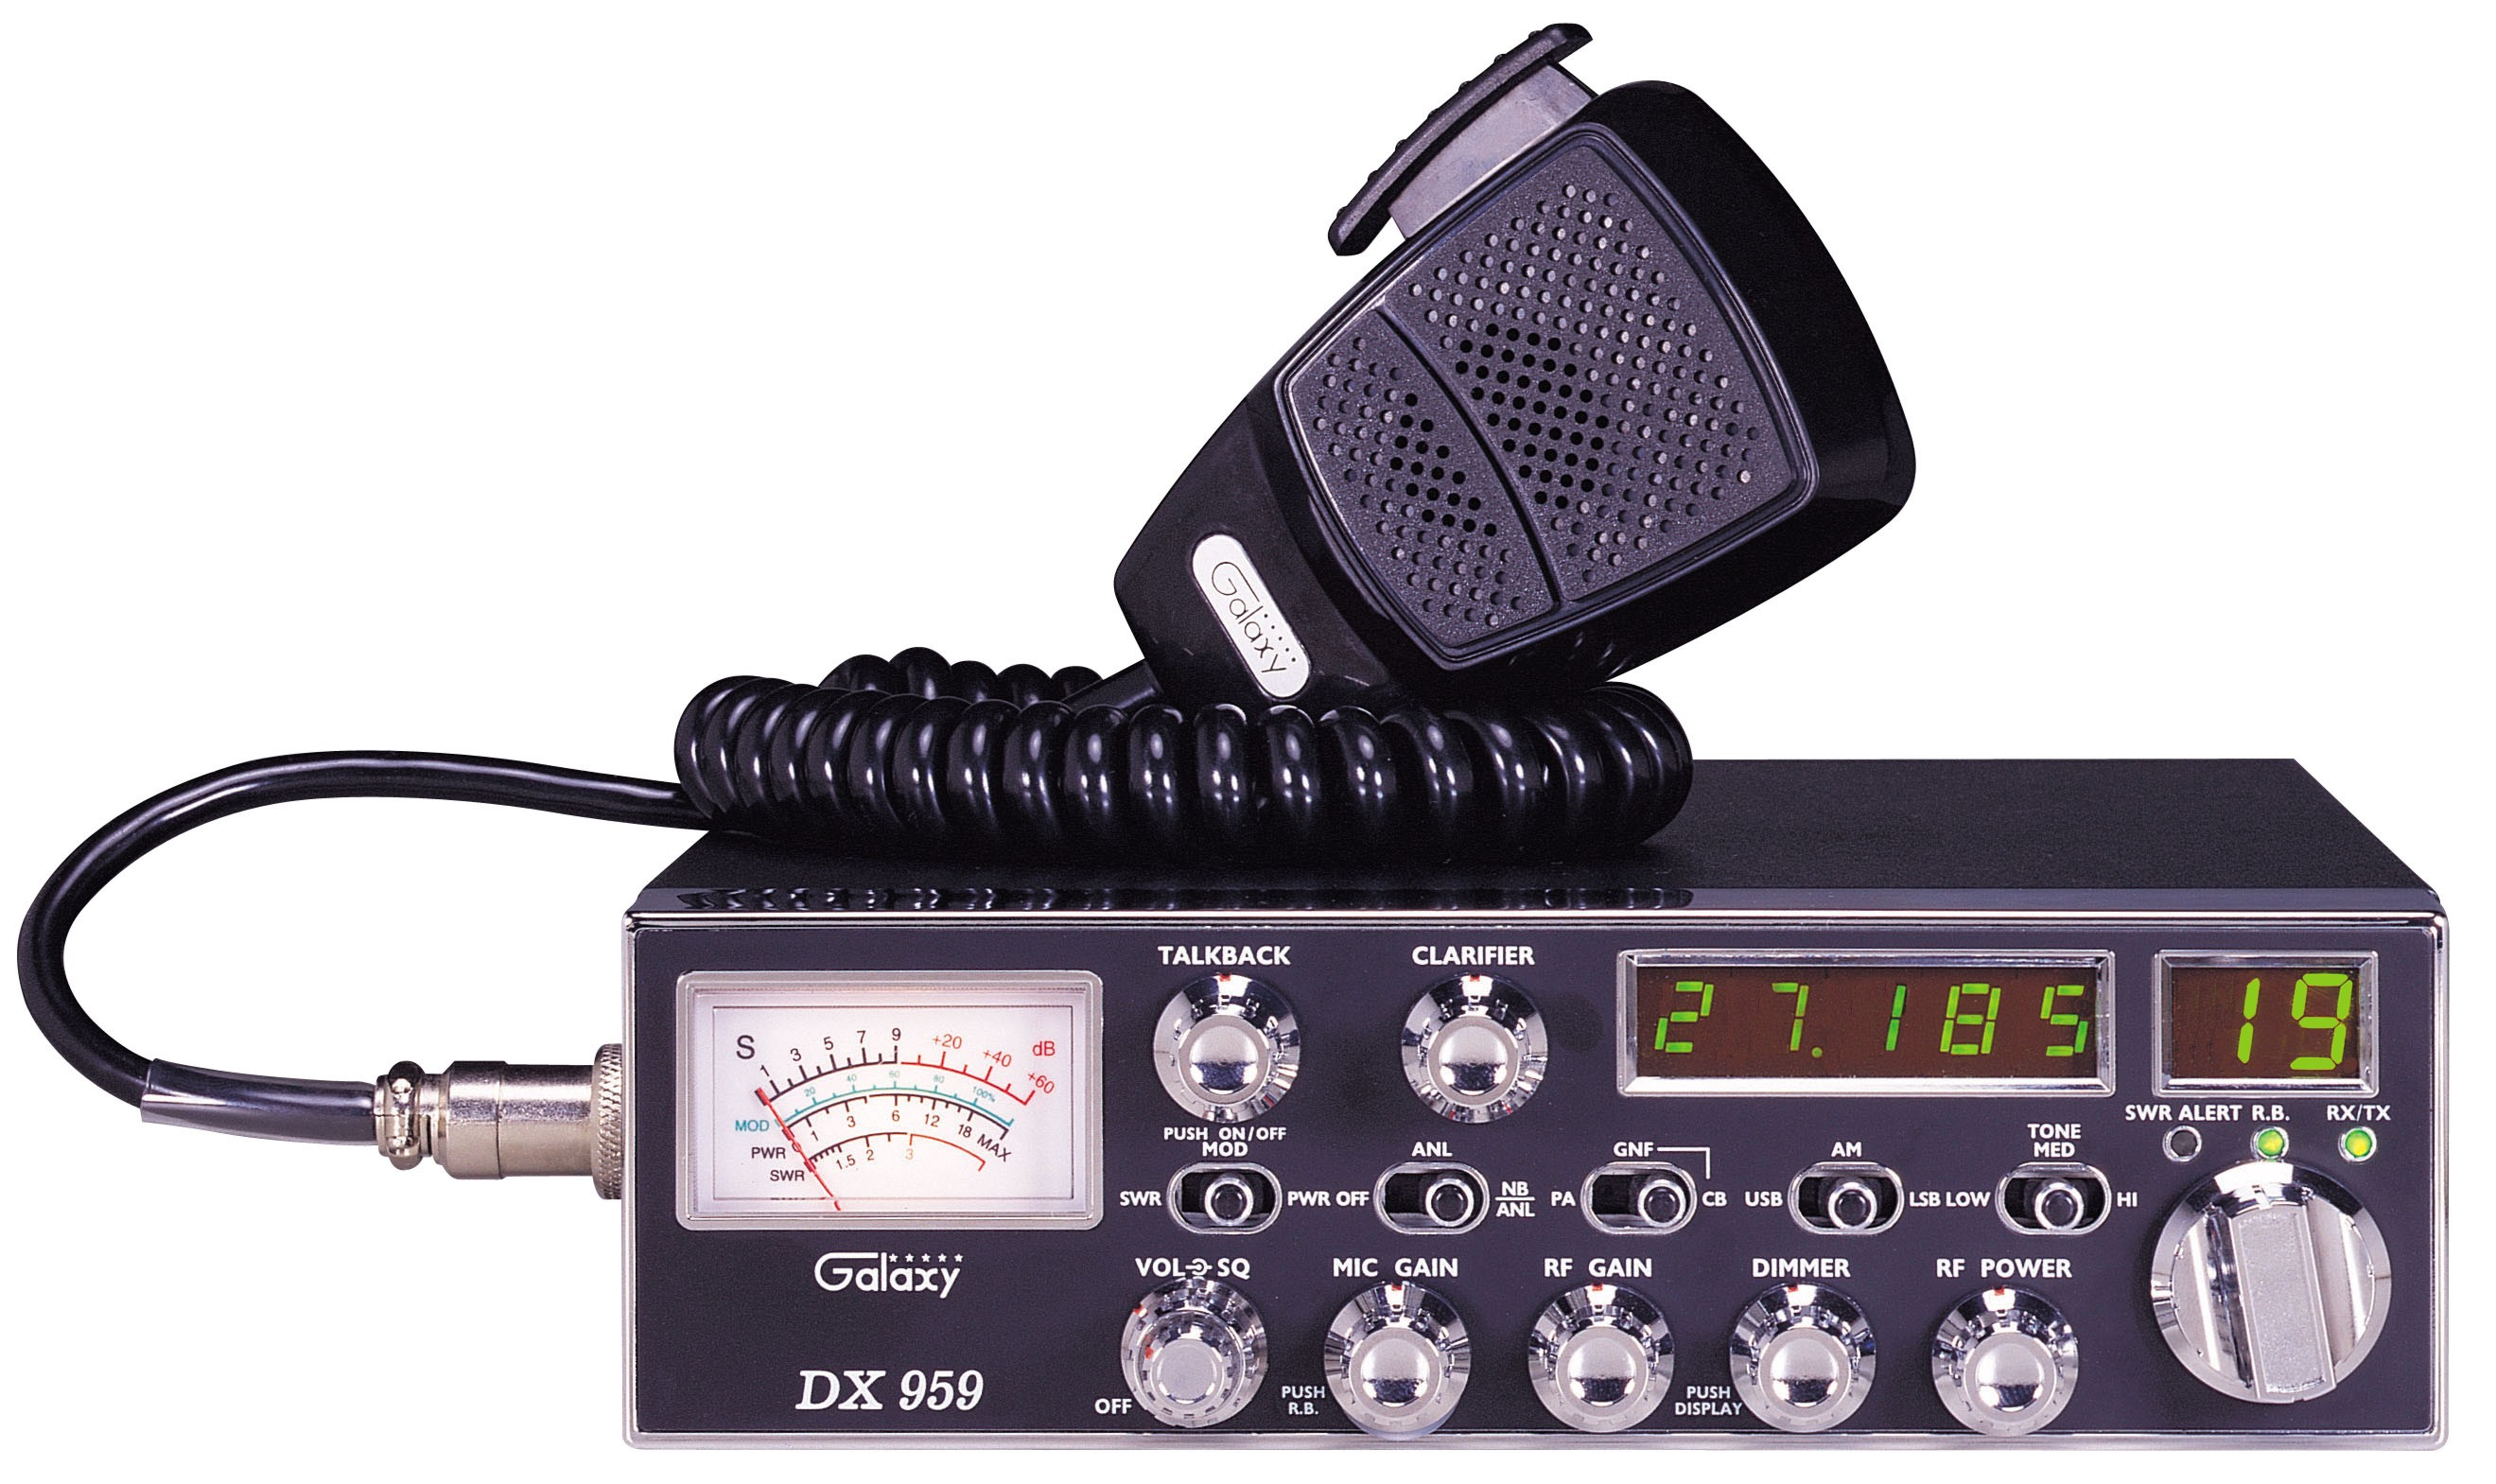 Galaxy cb radio models